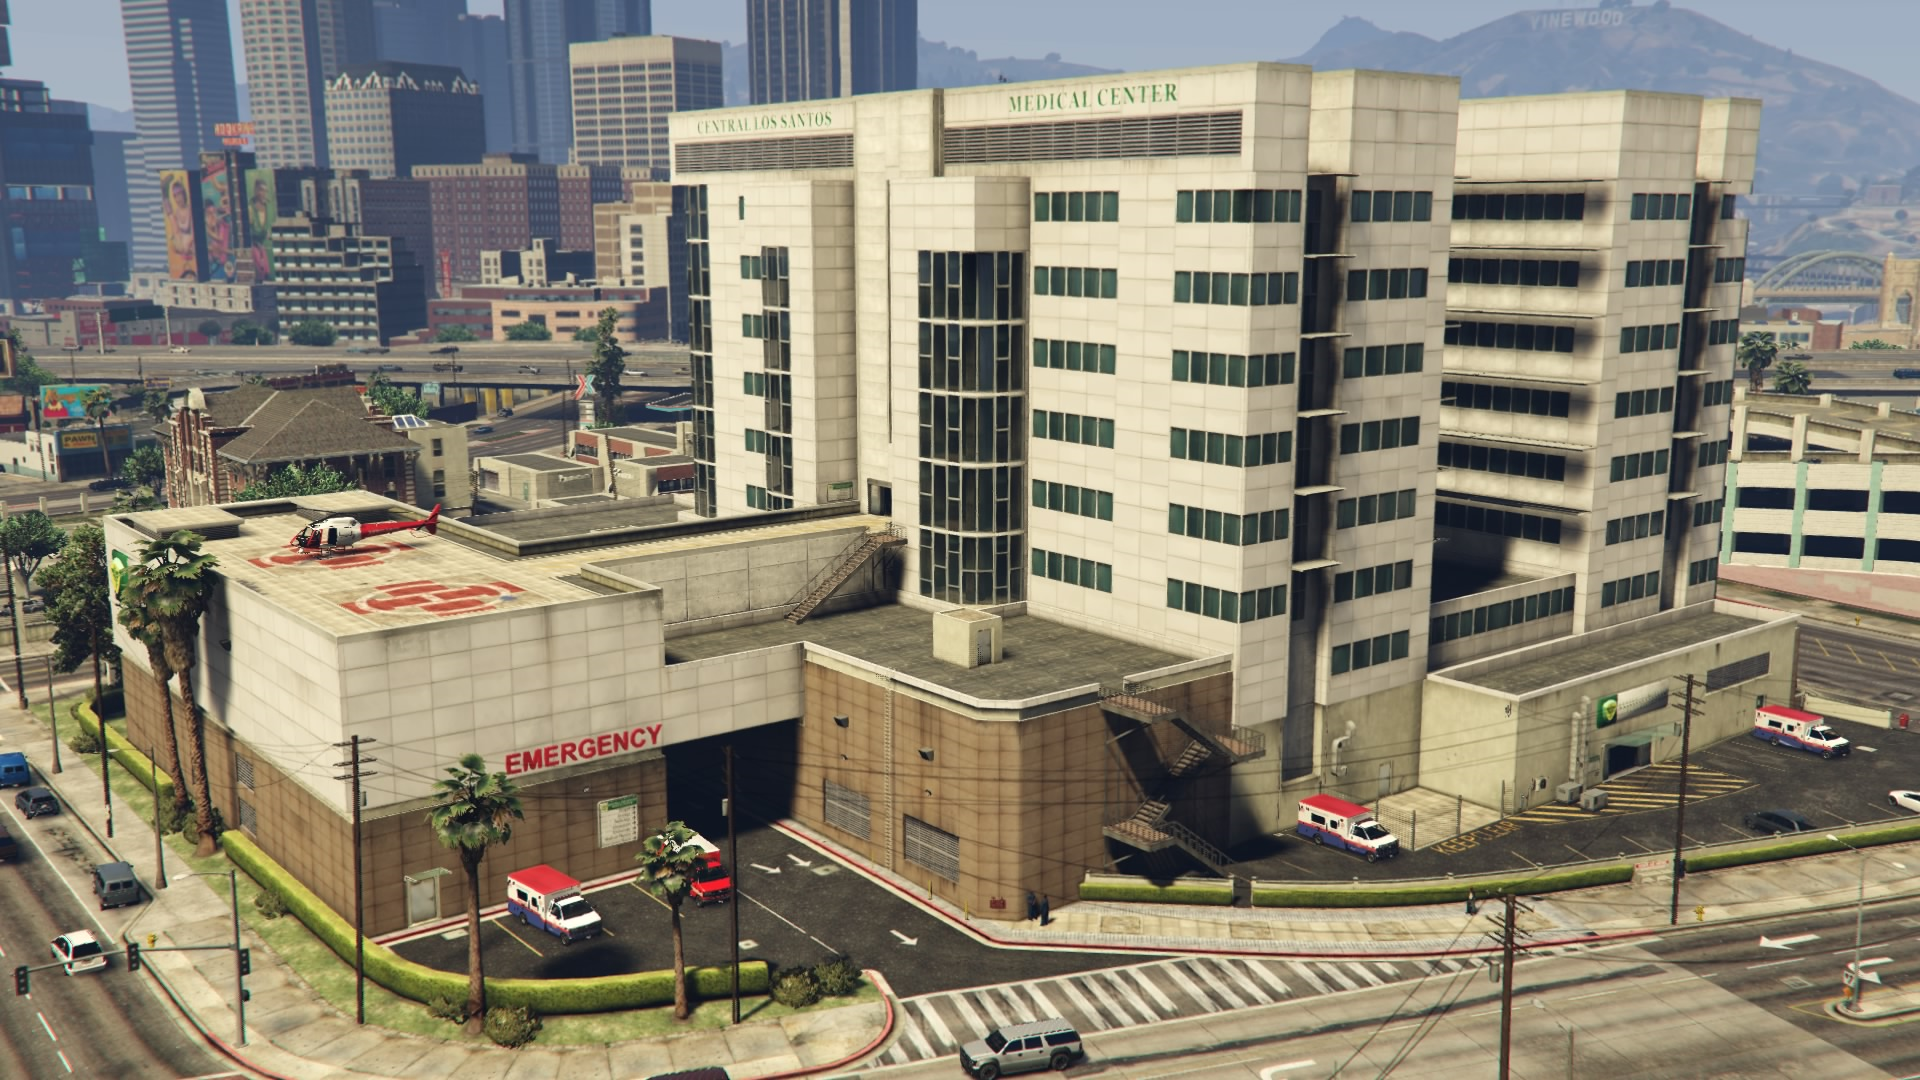 Central Los Santos Medical Center | GTA Wiki | FANDOM